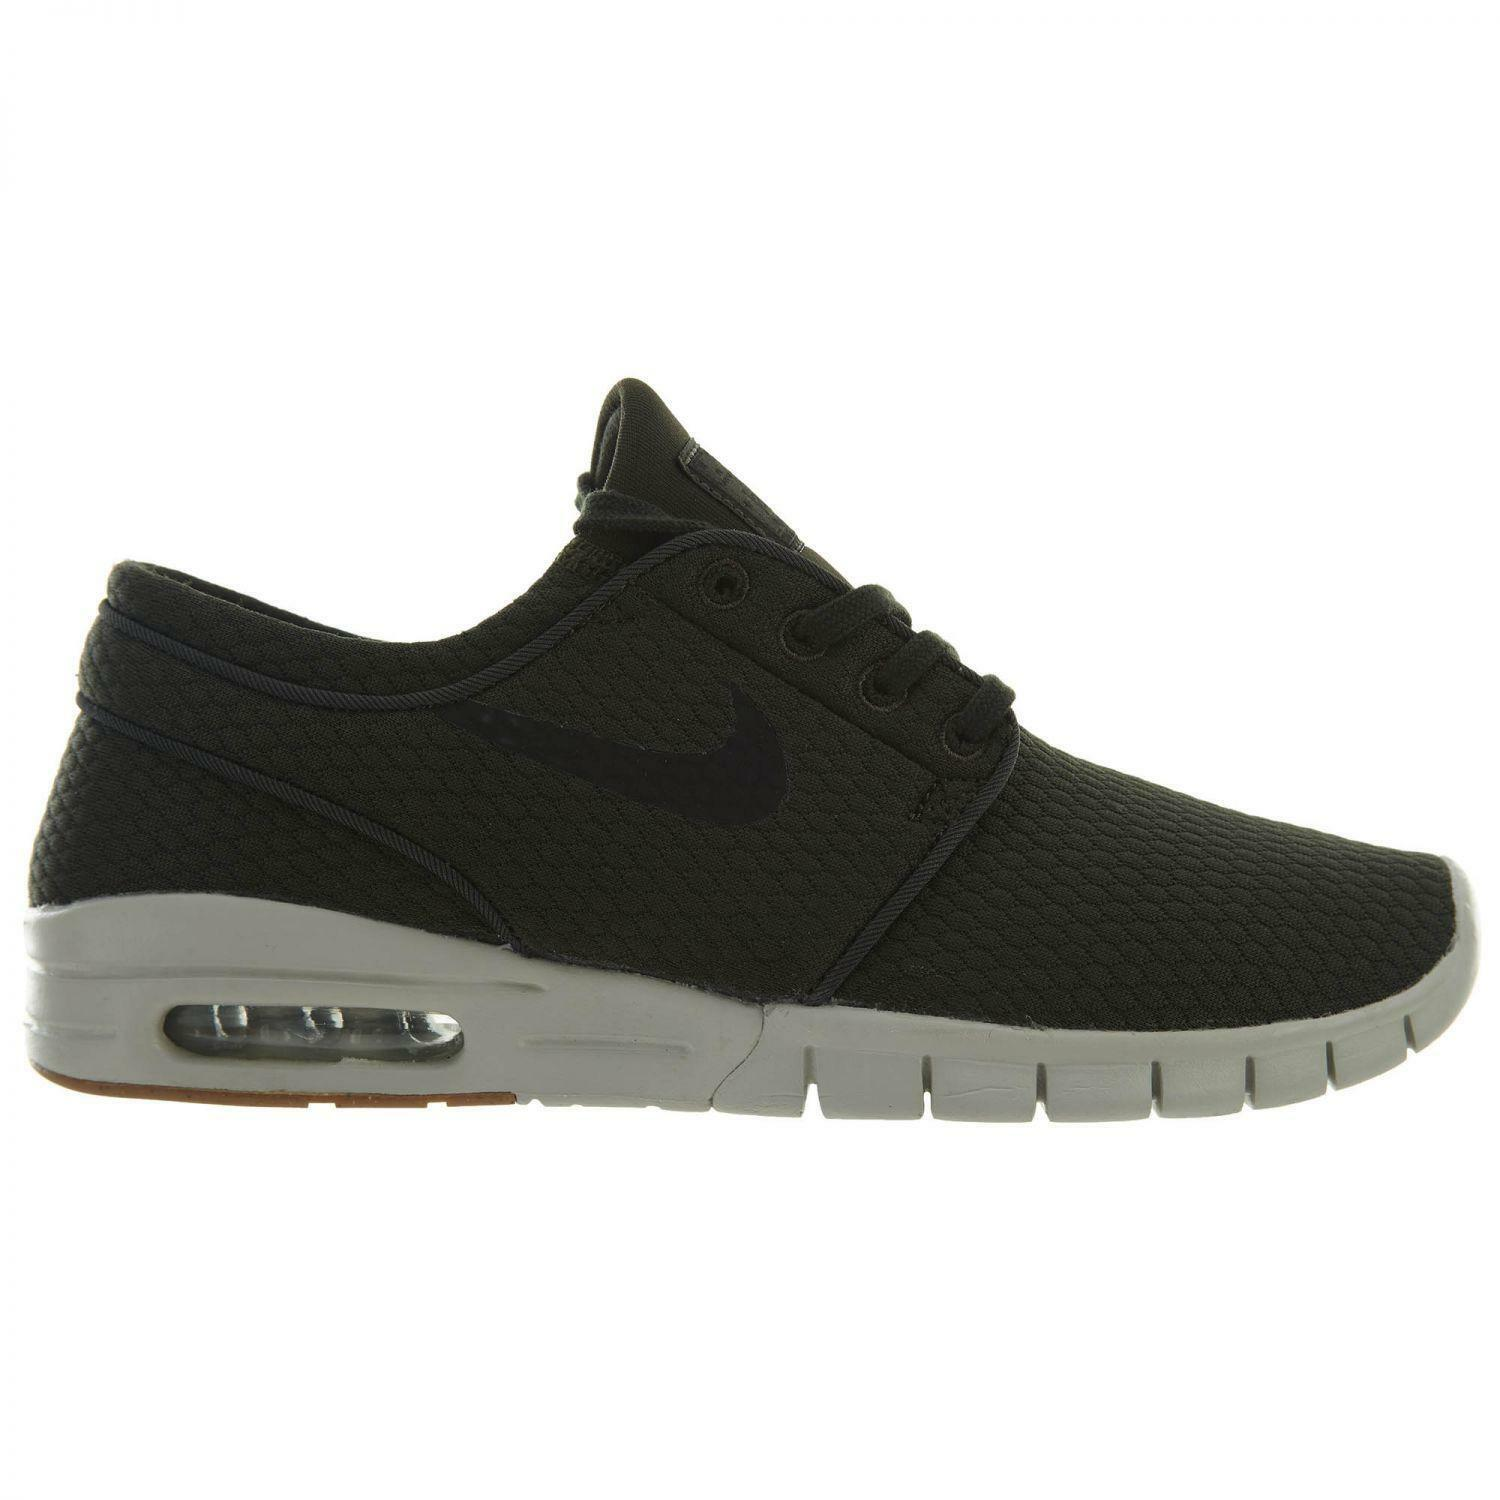 Mens NIKE STEFAN JANOSKI MAX Dark Green Trainers 631303 302